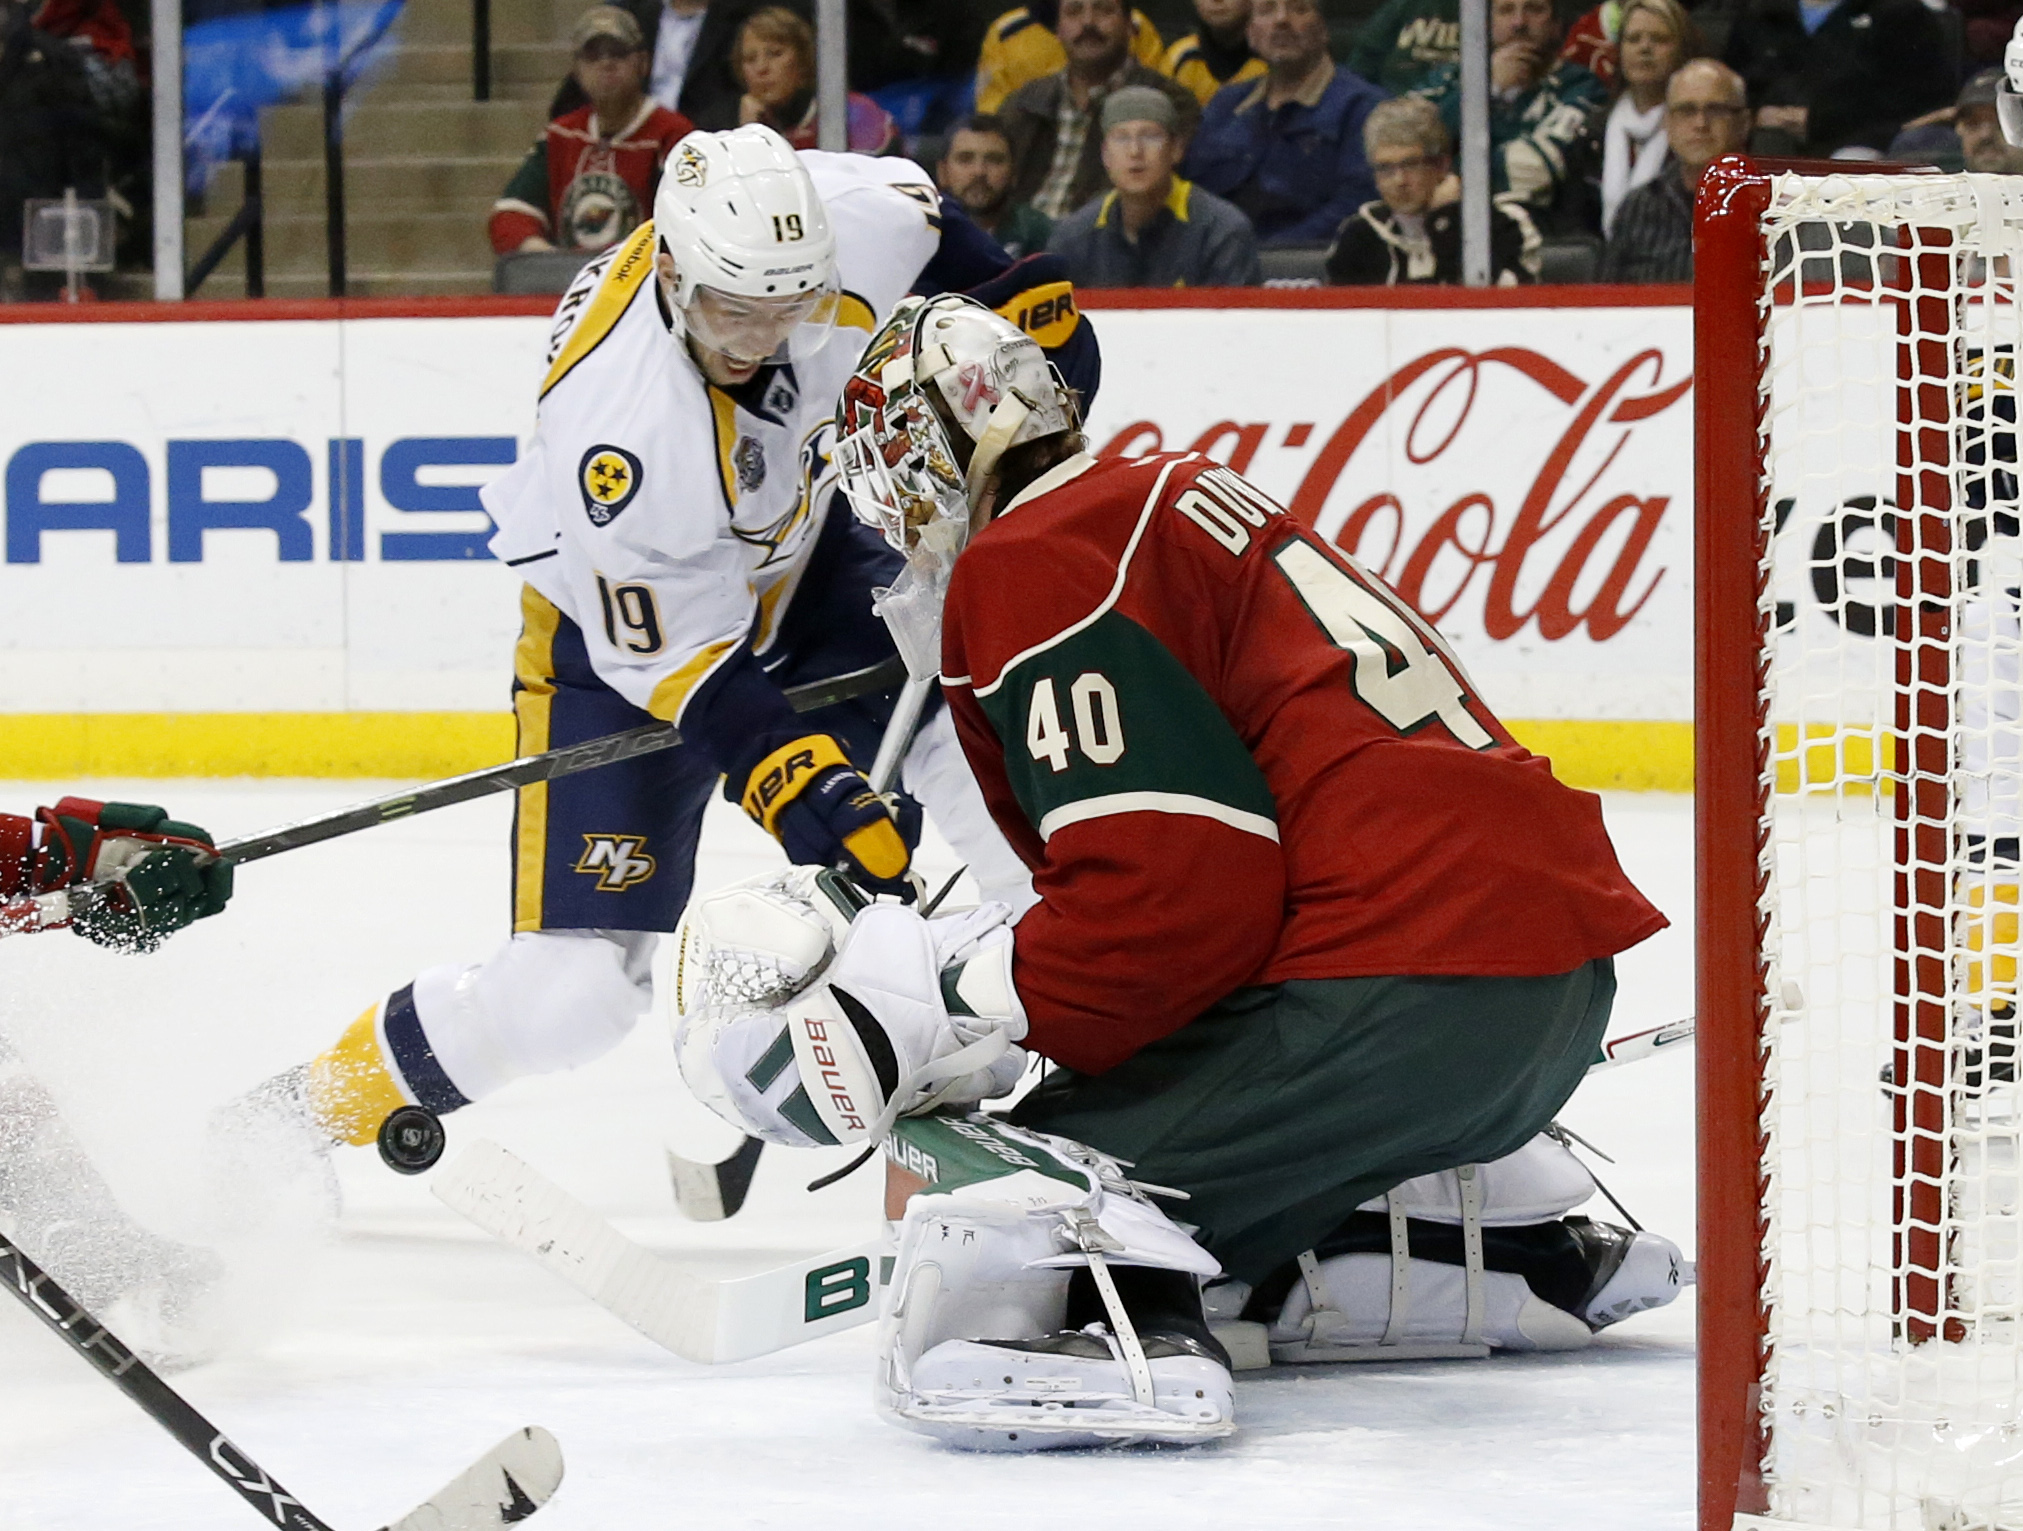 Minnesota Wild goalie Devan Dubnyk (40) deflects a point-blank shot by Nashville Predators center Calle Jarnkrok (19), of Sweden, during the second period of an NHL hockey game in St. Paul, Minn., Saturday, Nov. 21, 2015. (AP Photo/Ann Heisenfelt)